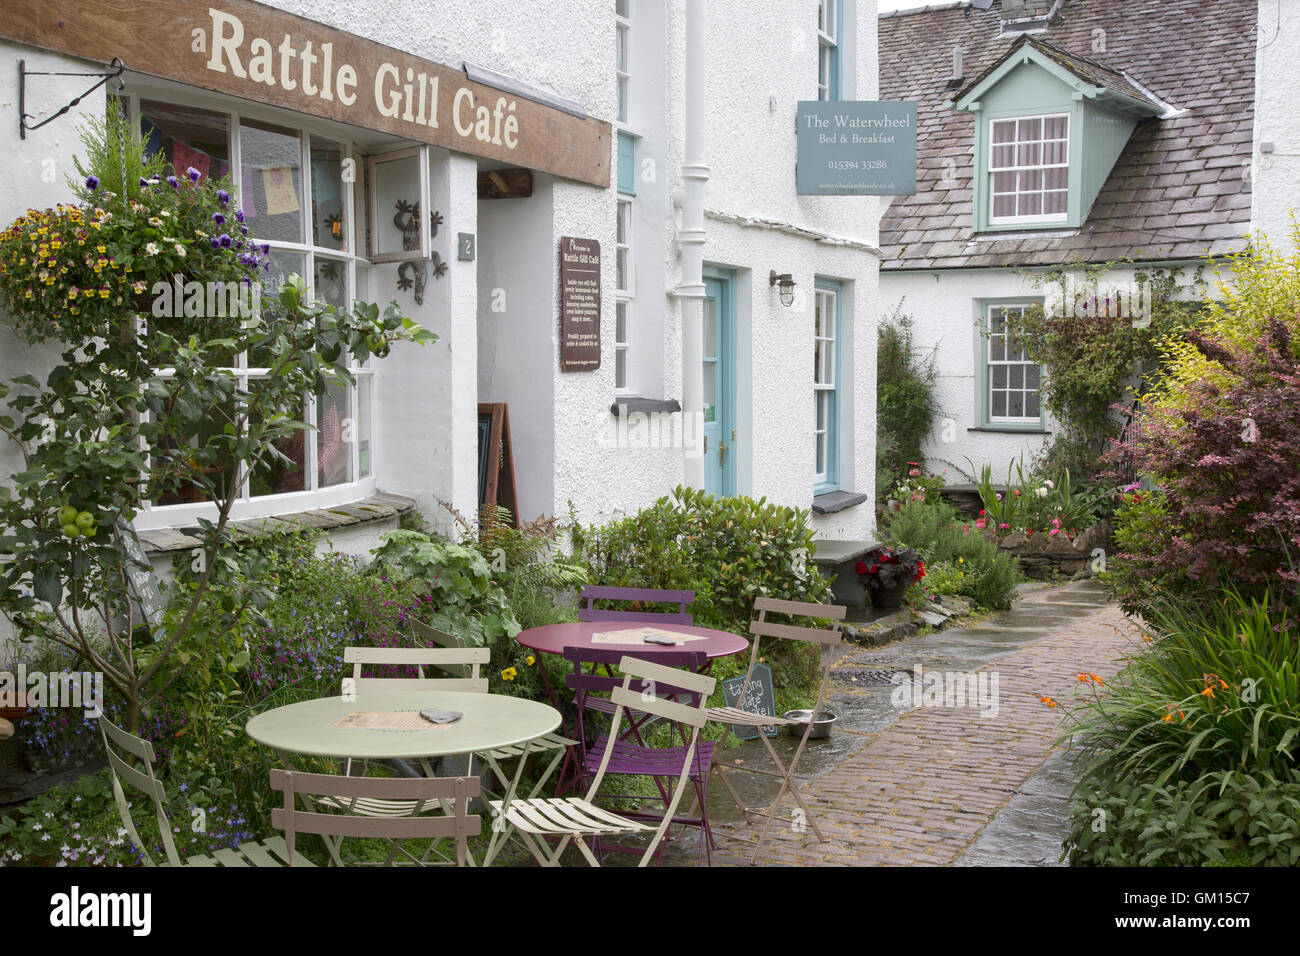 Rattle Grill Cafe; Ambleside; Lake District; England; UK - Stock Image